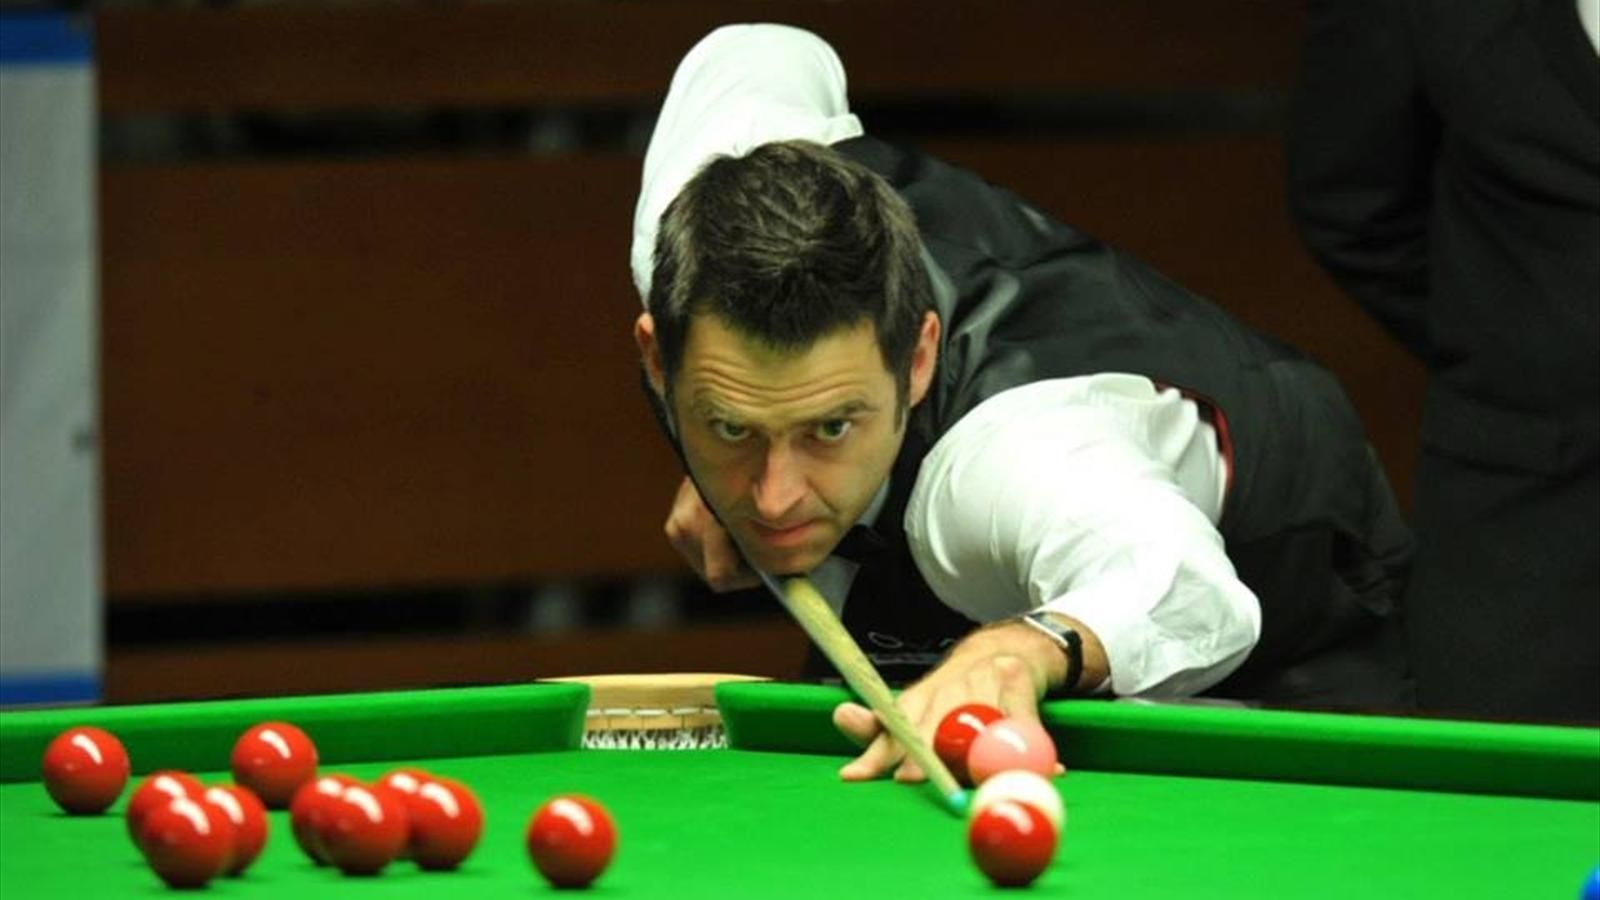 Pin by HD 2k on 1080p Wallpapers | Ronnie o'sullivan, Wallpaper, 1080p wallpaper